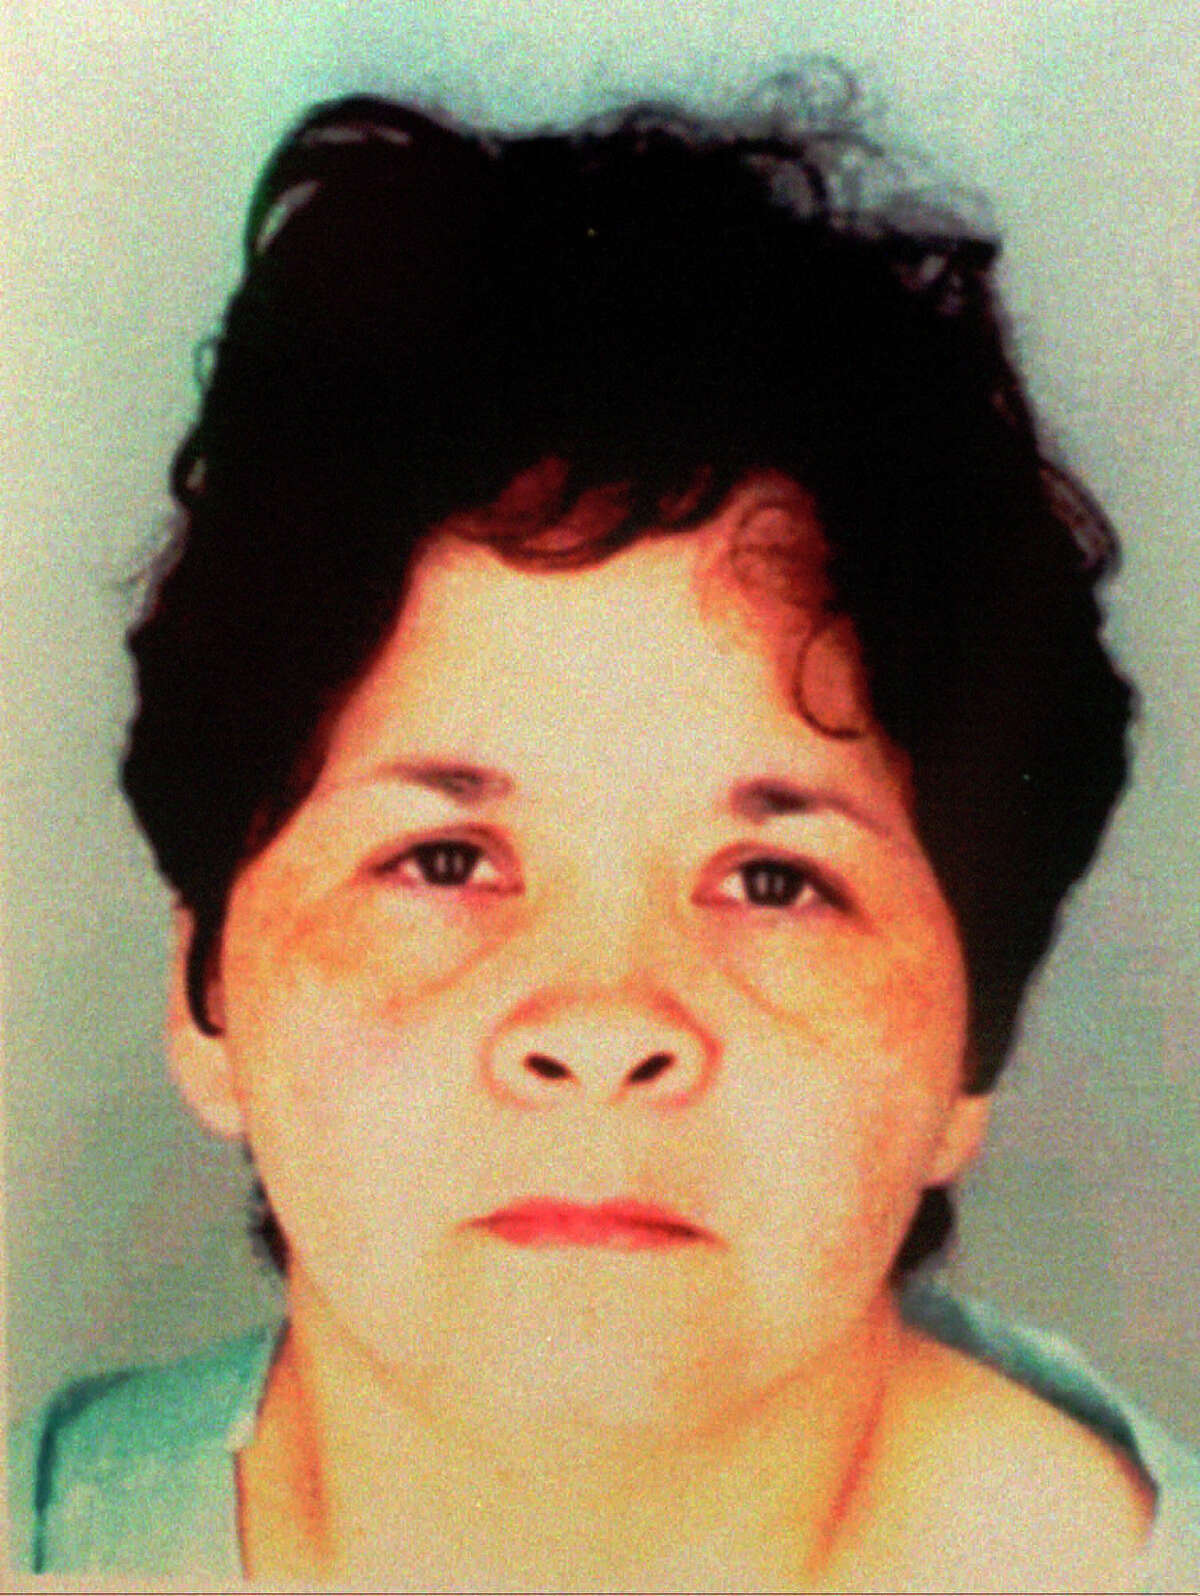 Yolanda Saldivar, shown in this Corpus Christi Police Department booking photo displayed during a news confernce Saturday, April 1, 1995, is being held in connection with the shooting death of grammy-winning recording artist Selena in Corpus Christi, Texas. Selena was fatally shot Friday at a motel in Corpus Christi. (AP Photo/Corpus Christi Police Department)